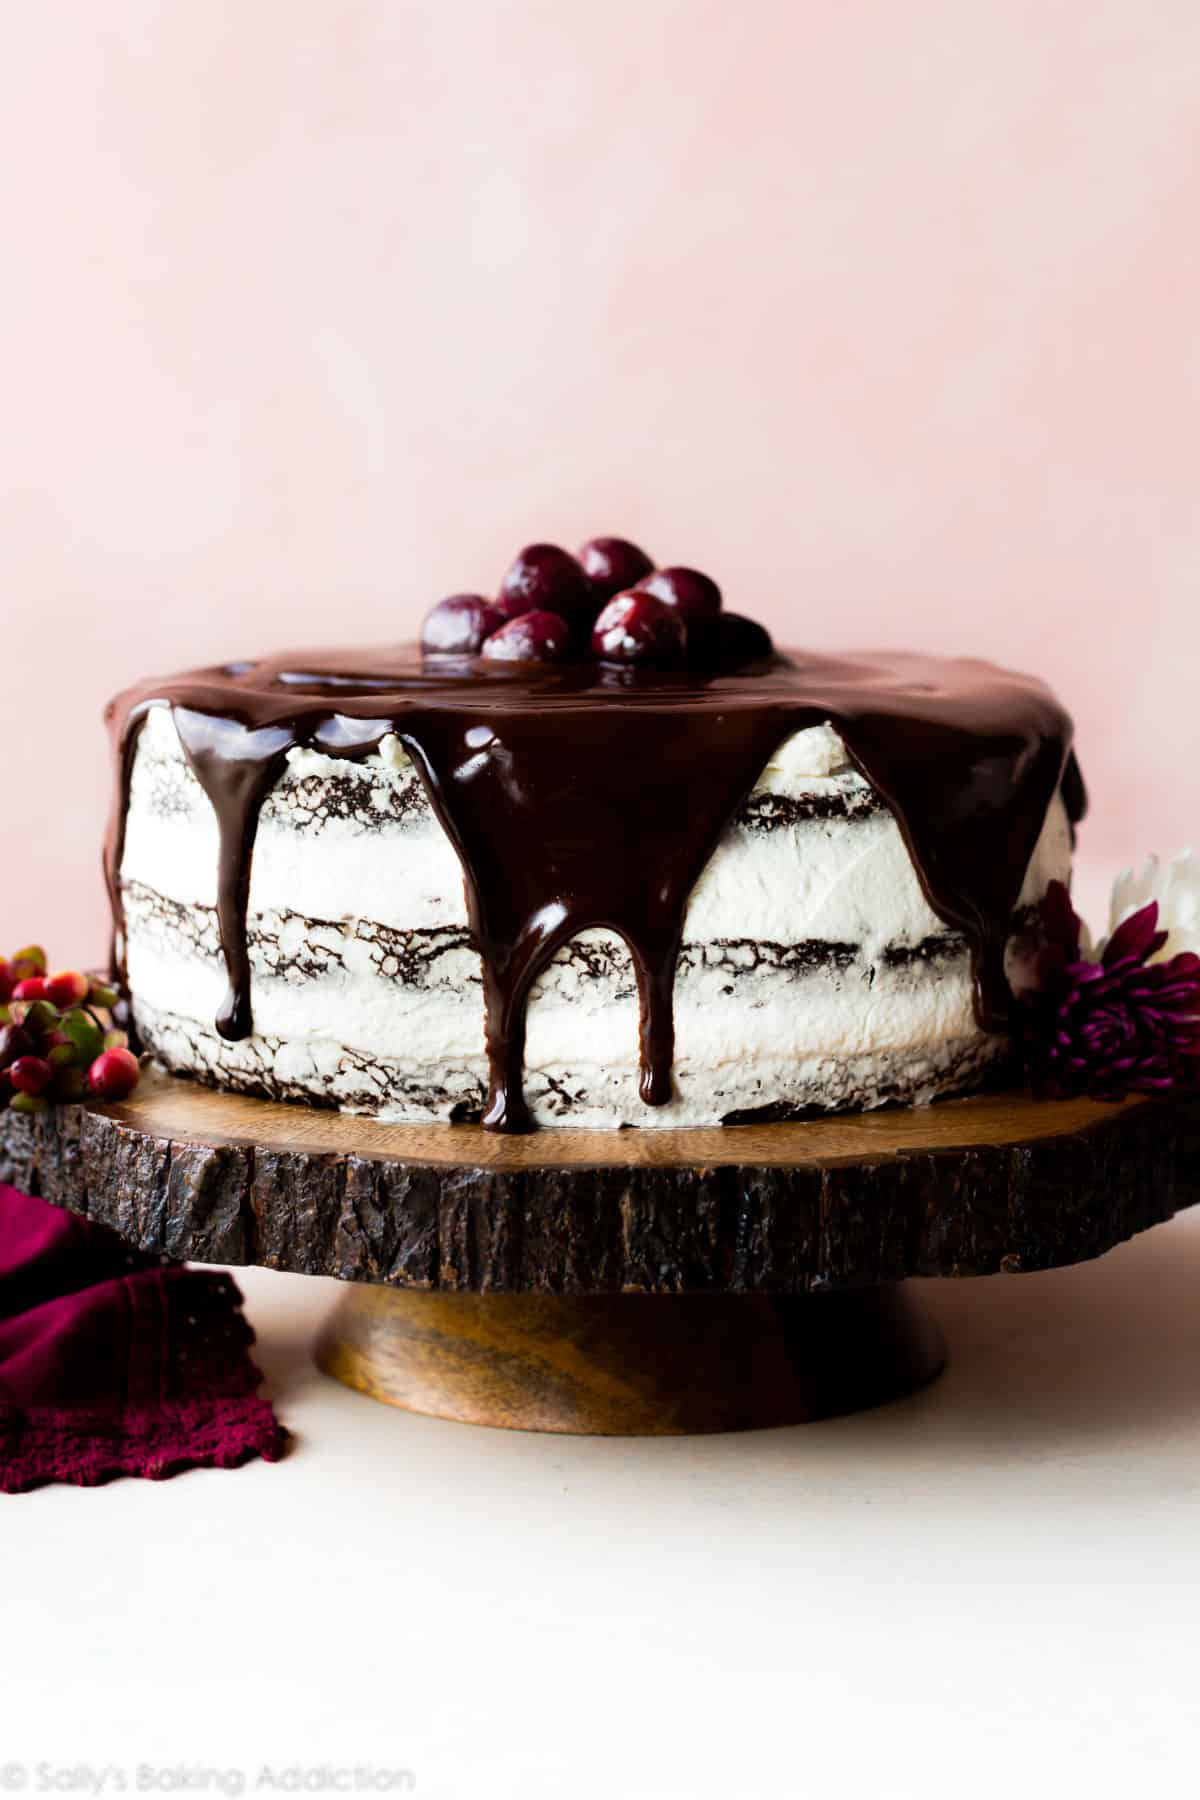 Black Forest Cake | Sally's Baking Addiction